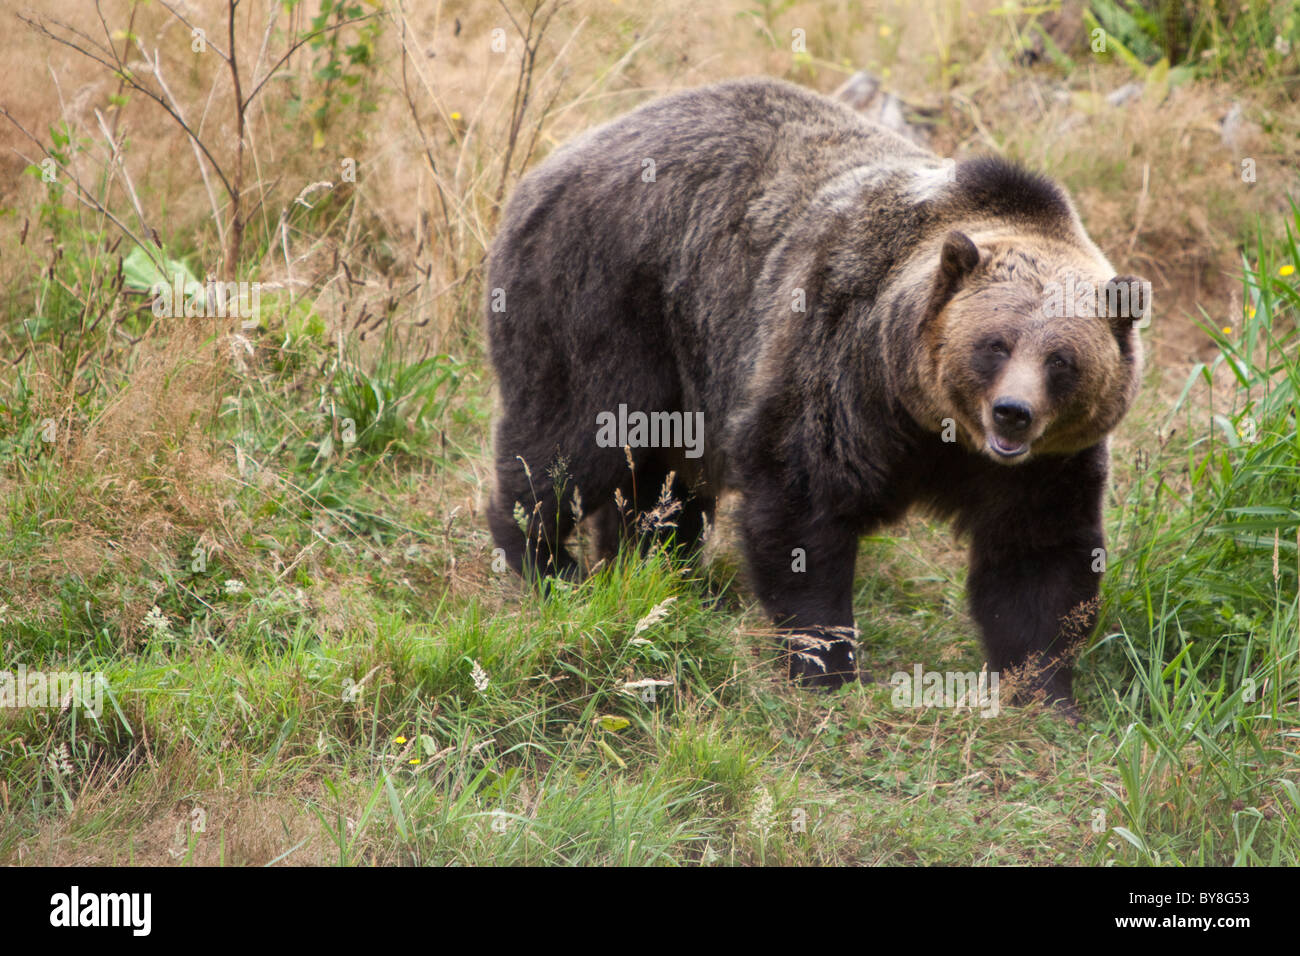 A grizzly bear at the Greater Vancouver Zoo in Aldergrove, BC, Canada. - Stock Image